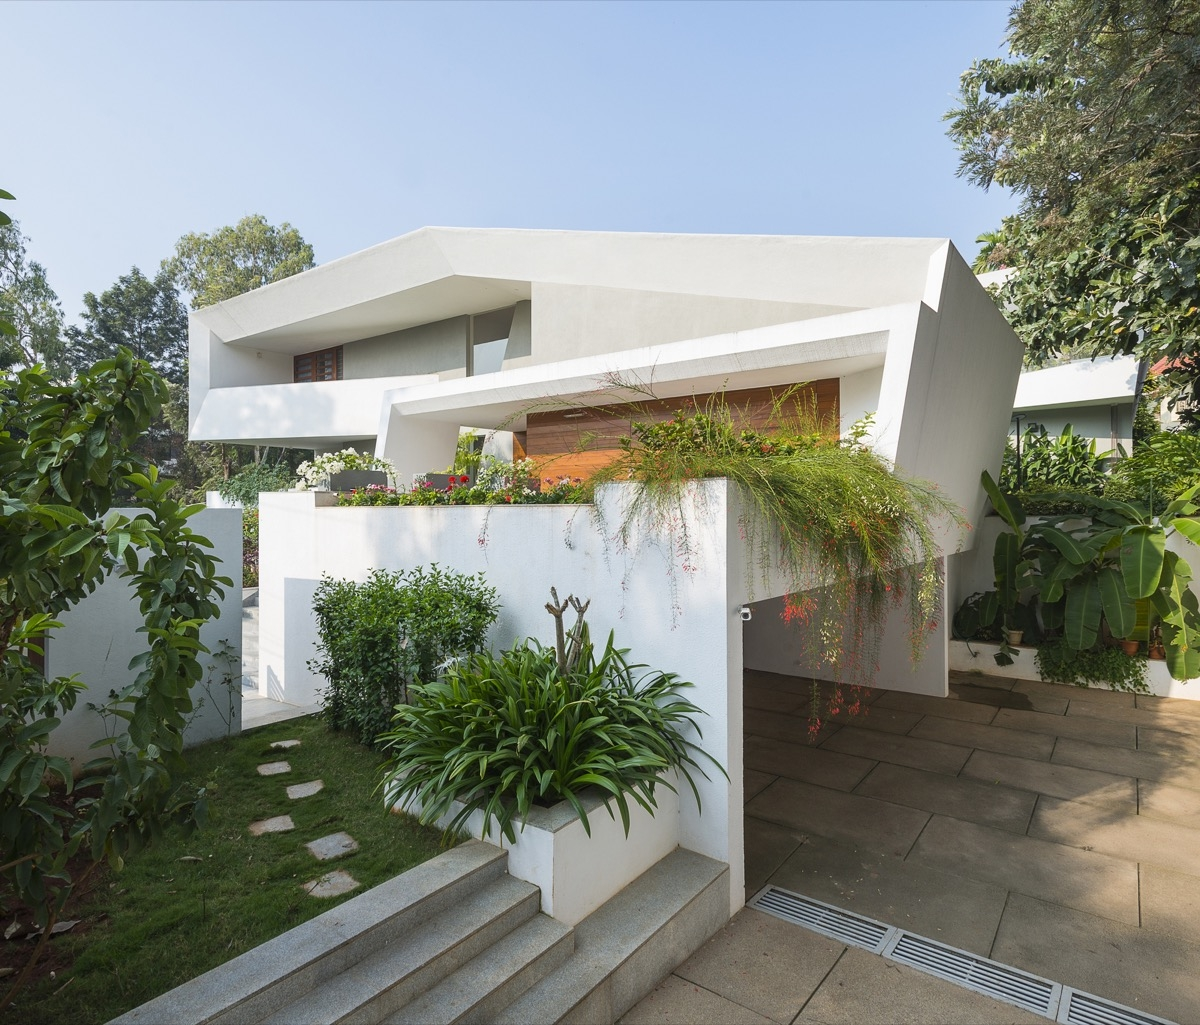 50 Stunning Modern Home Exterior Designs That Have Awesome Facades | Home Outside Steps Design | Diy | Front | Curved Front | Basic Outdoor | Deck